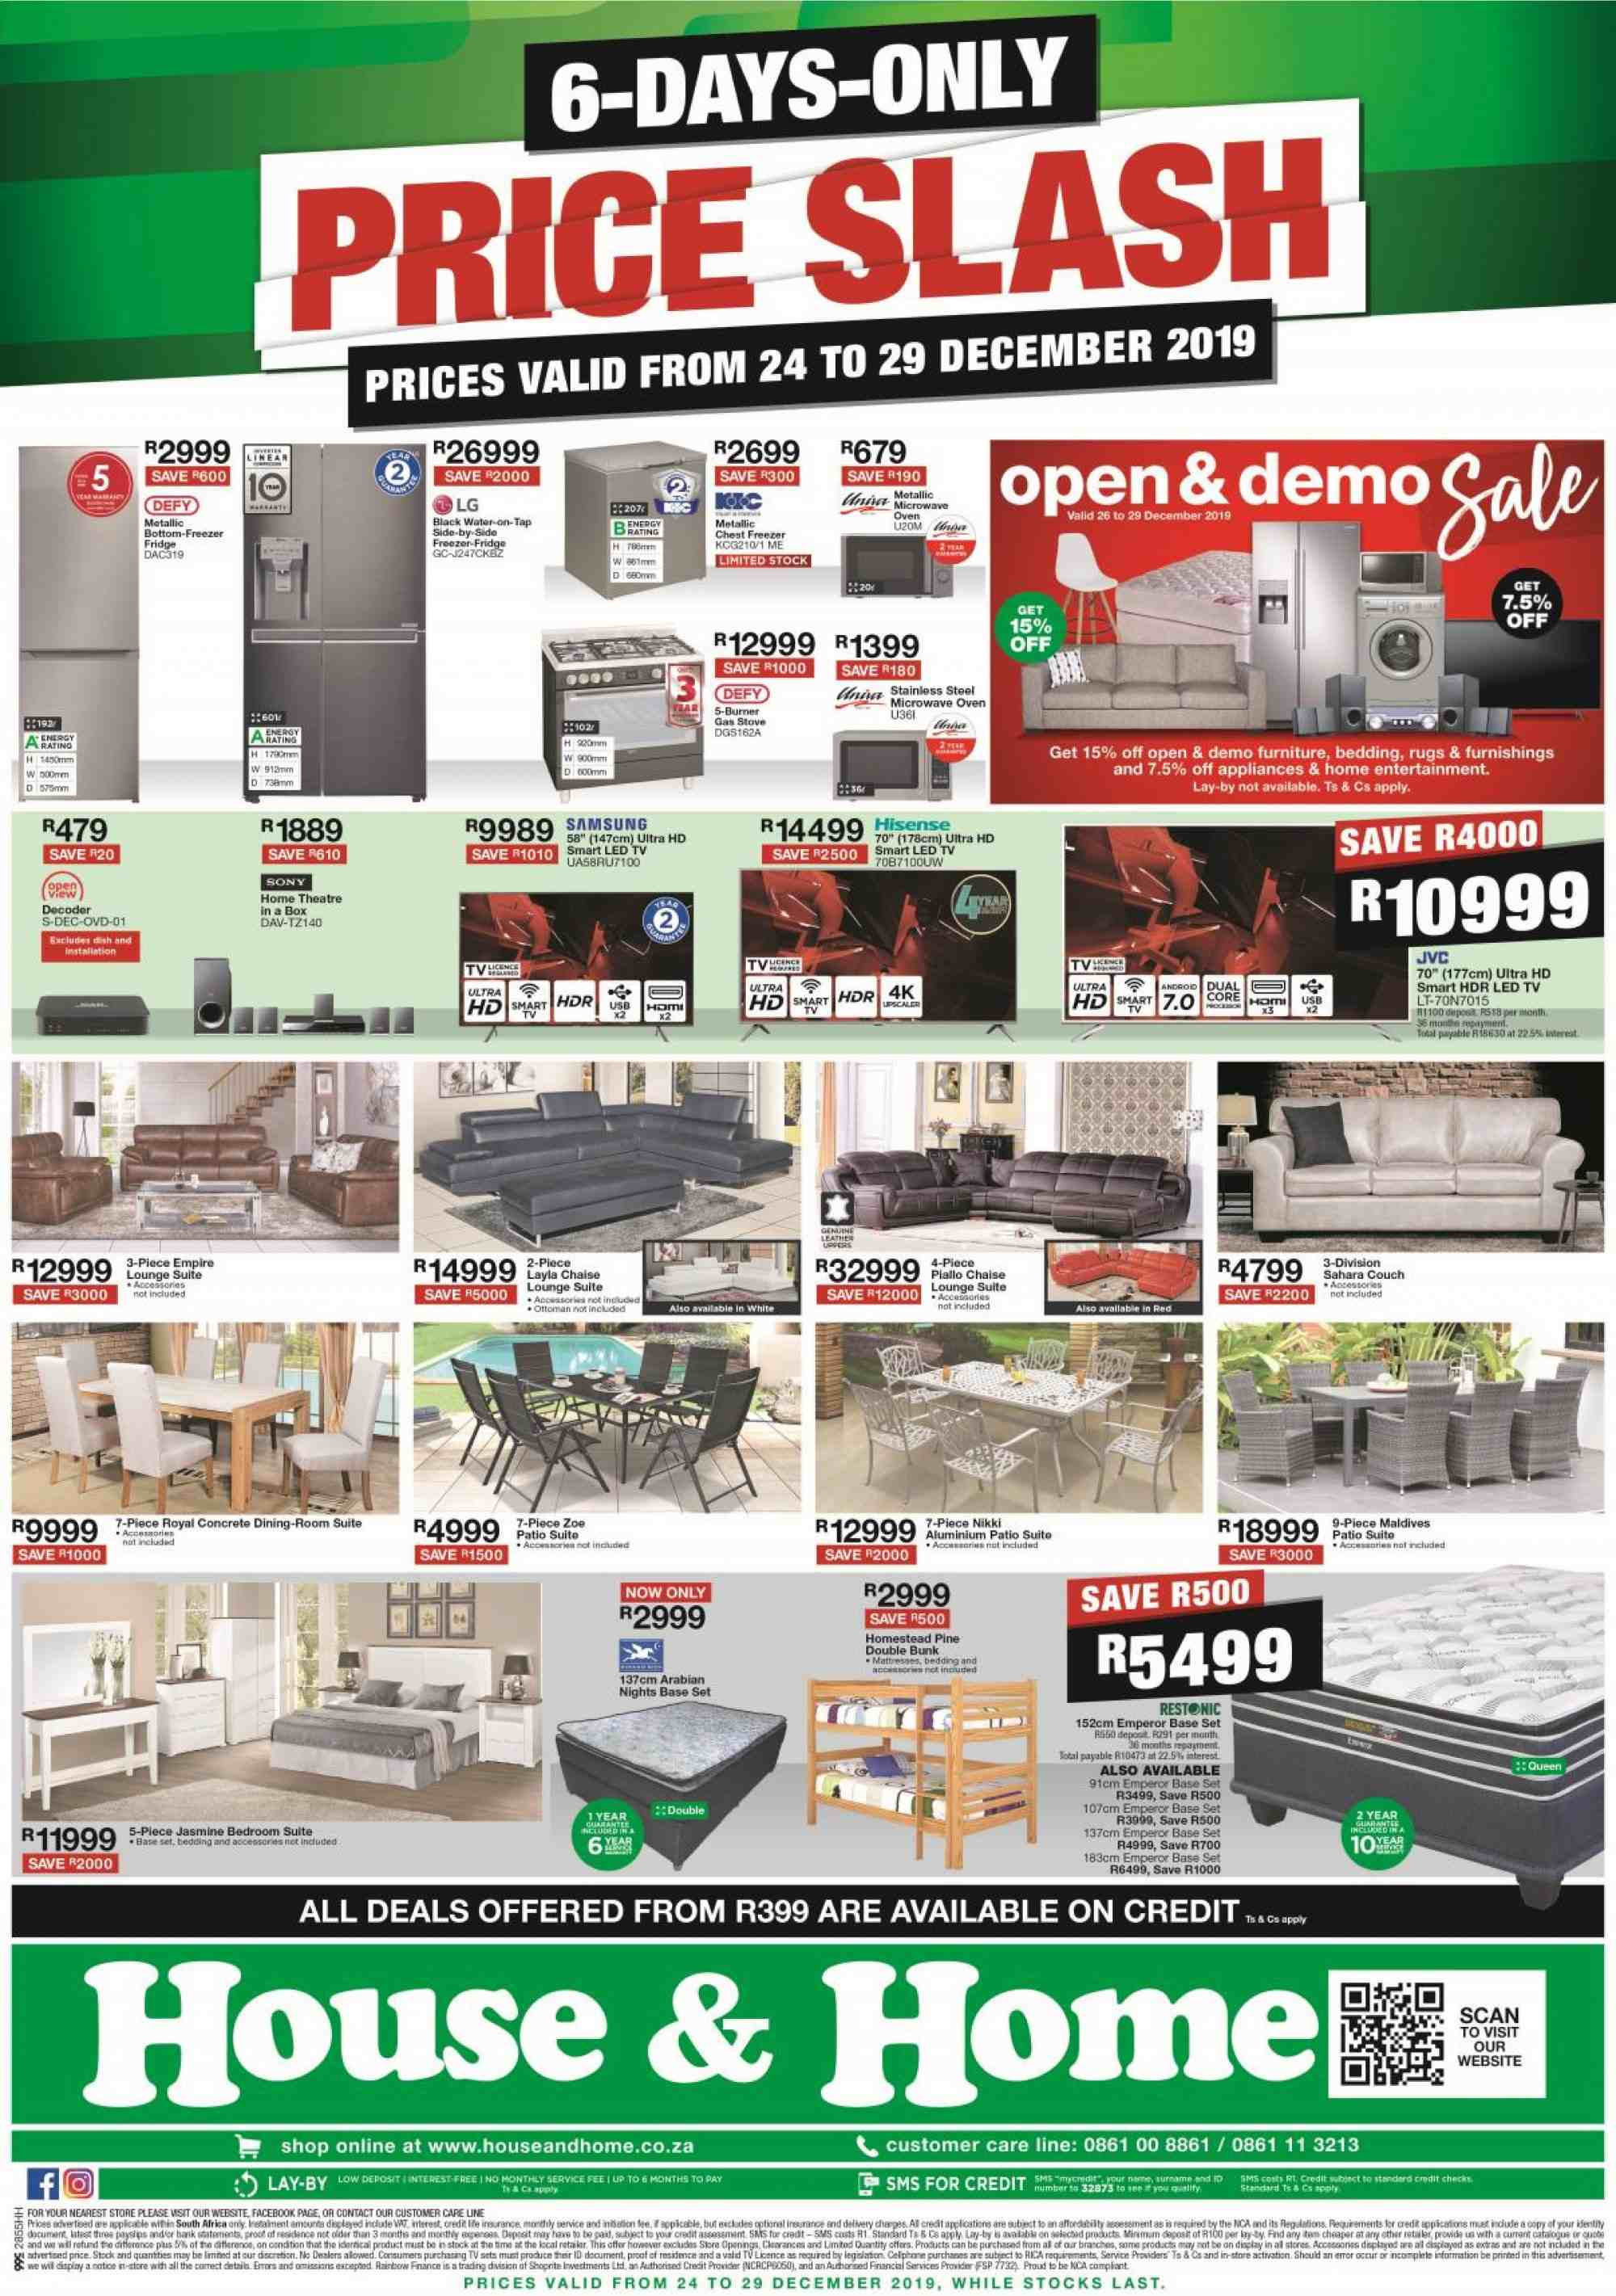 House & Home catalogue  - 12.24.2019 - 12.29.2019. Page 1.